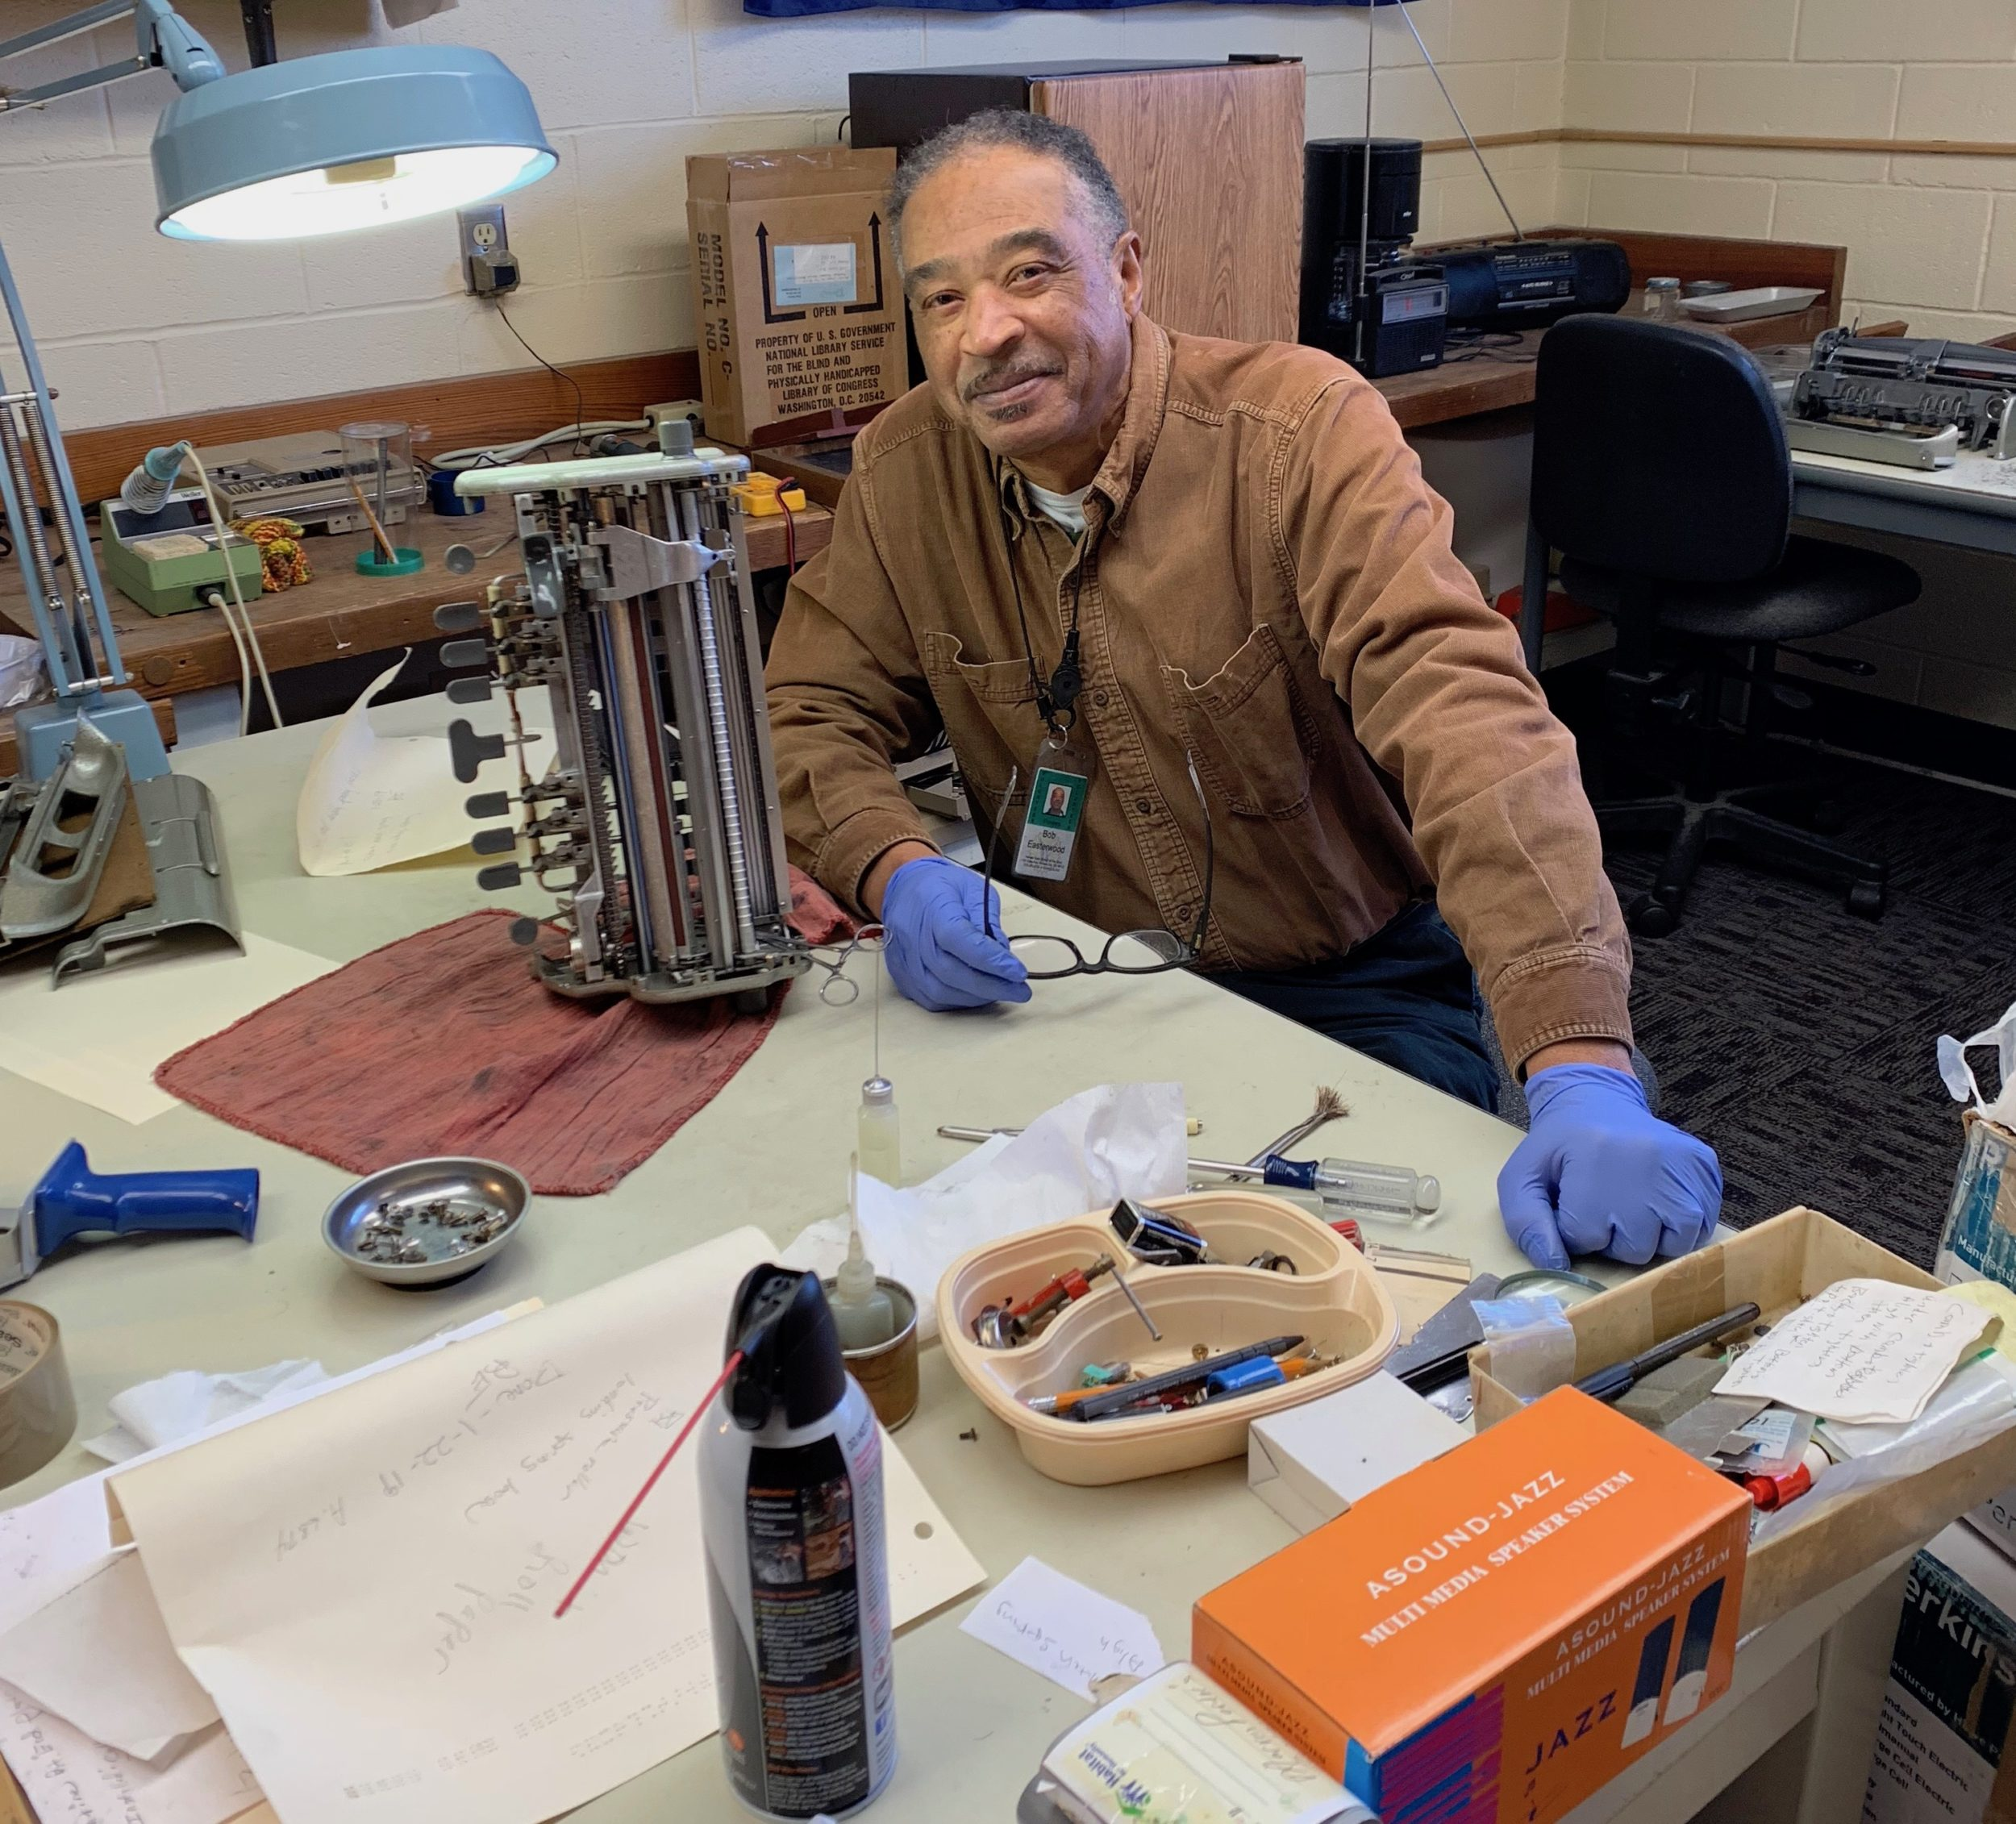 A Telephone Pioneer wearing a brown shirt and blue plastic work glove and sitting in front of a table containing the inner workings of a braille writer and tools.